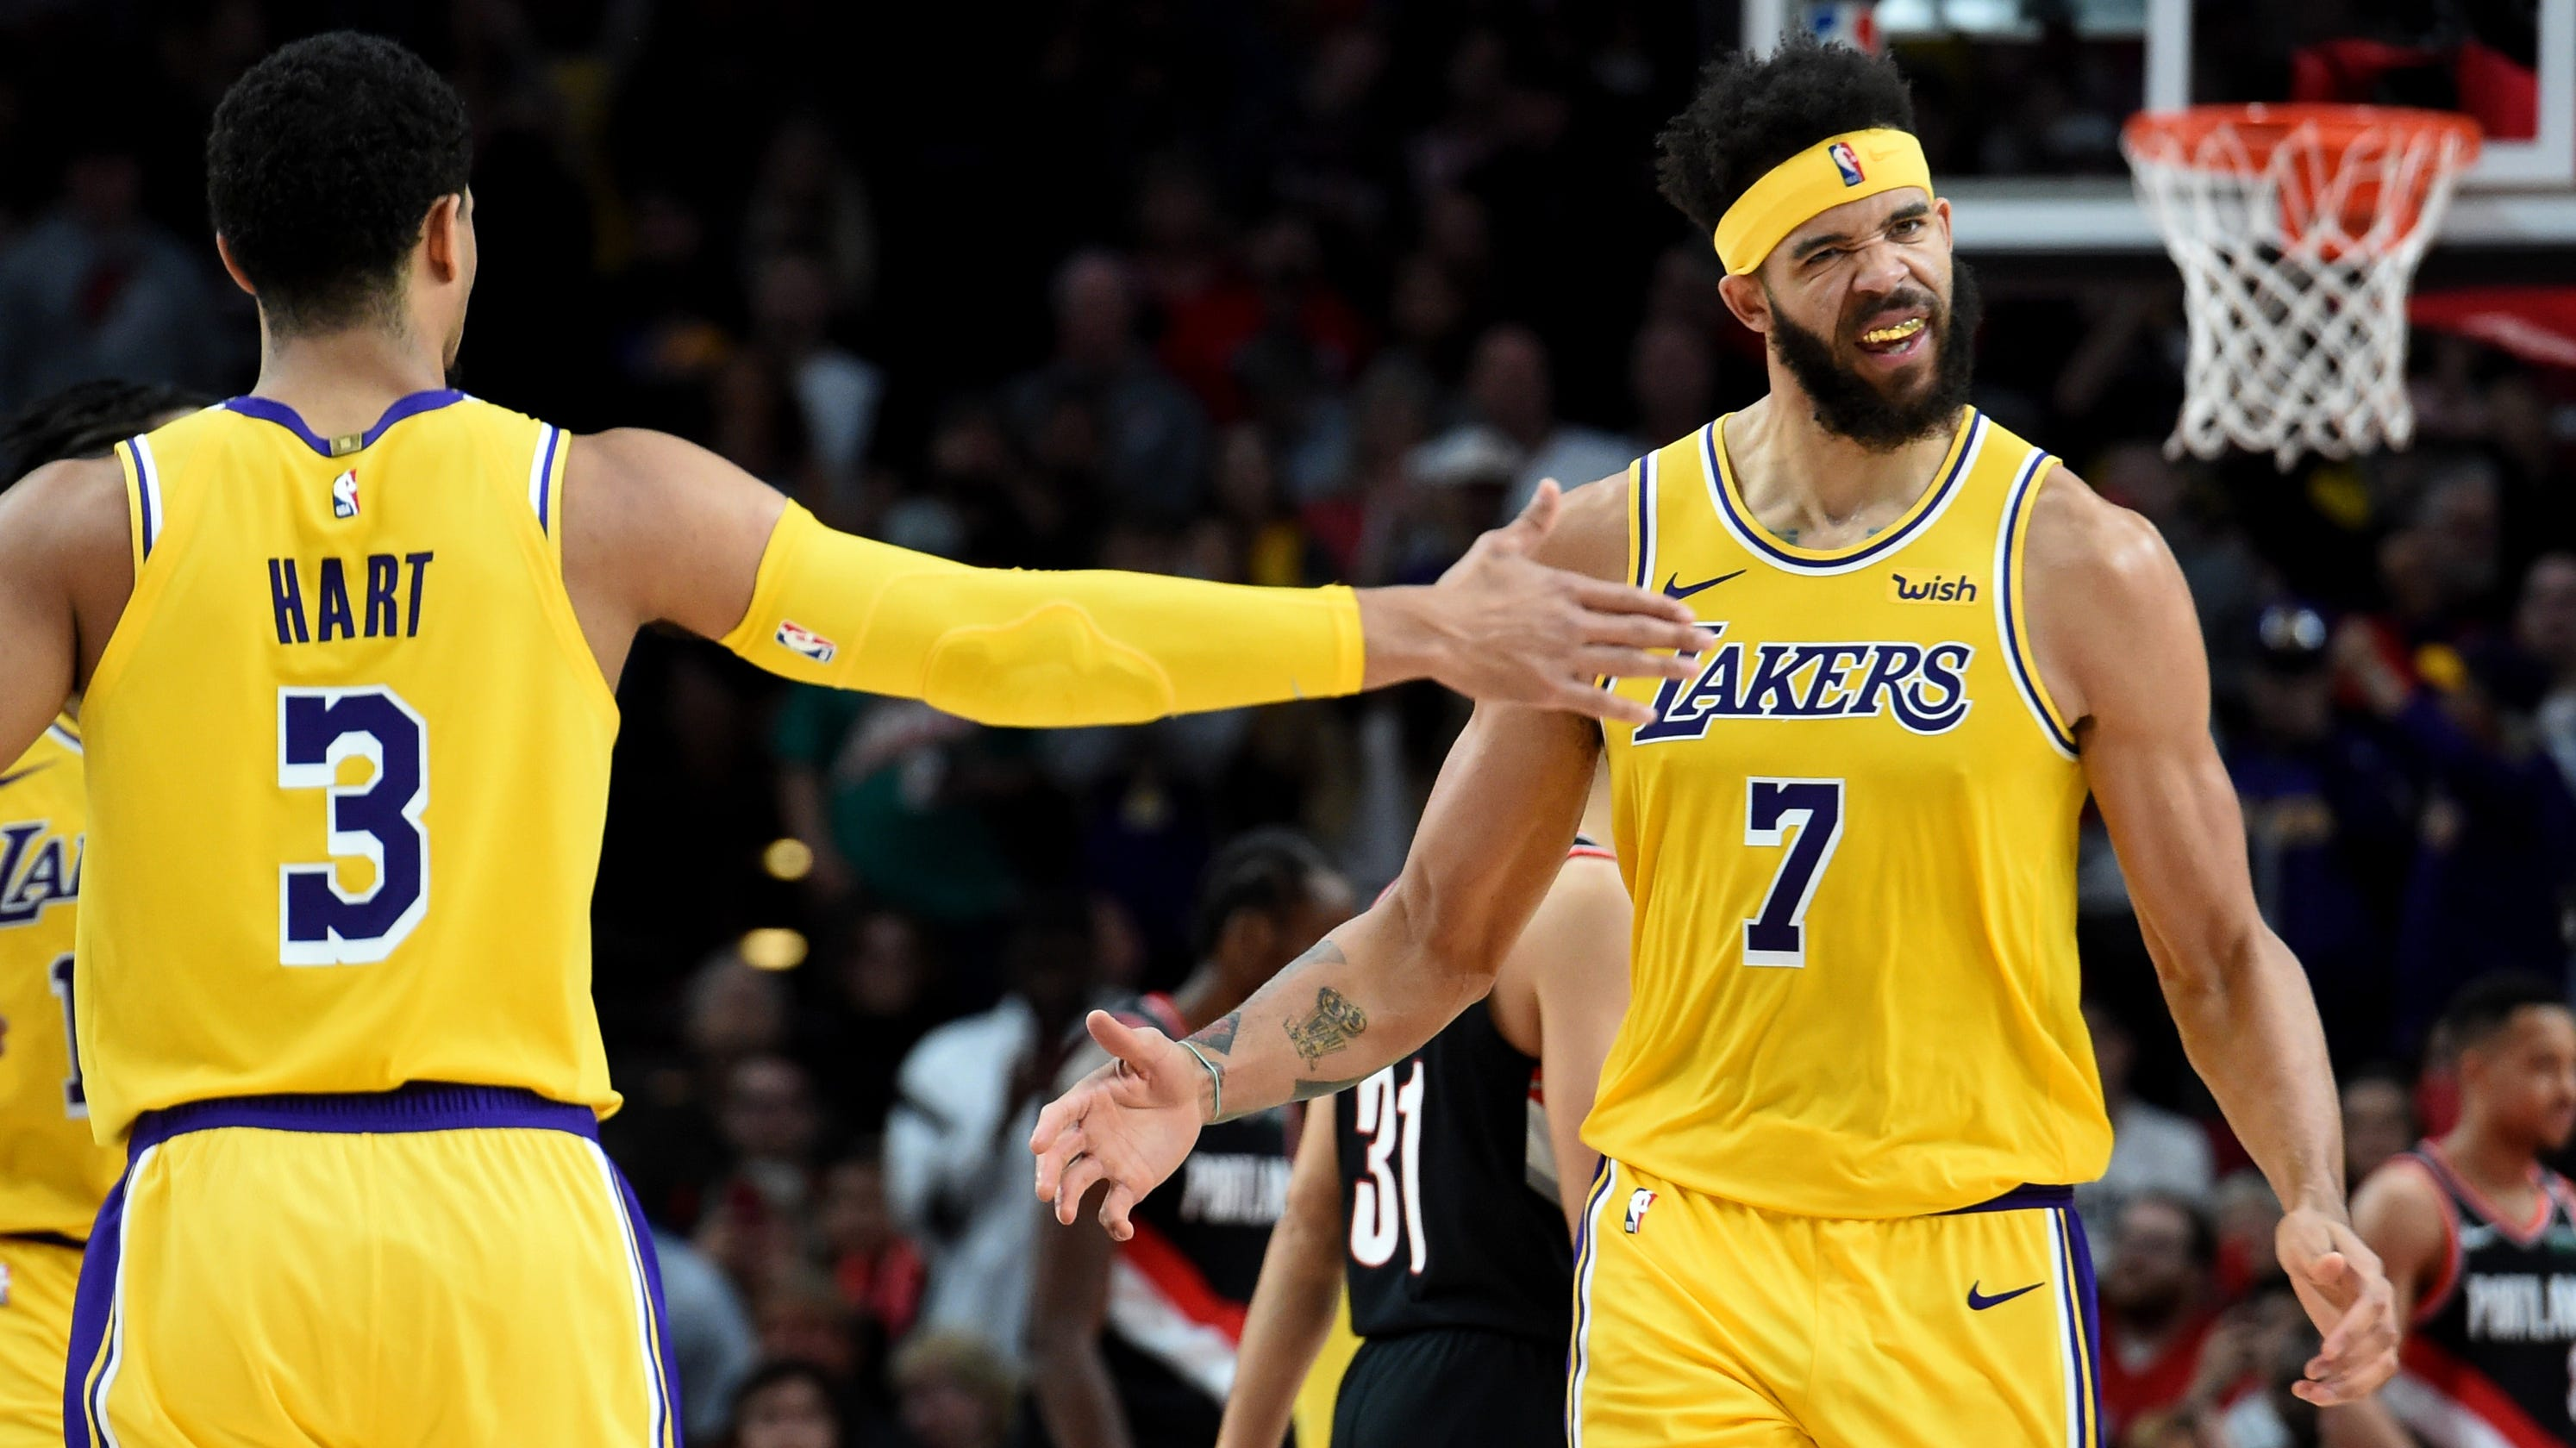 Lakers' JaVale McGee vlogs to document new reality